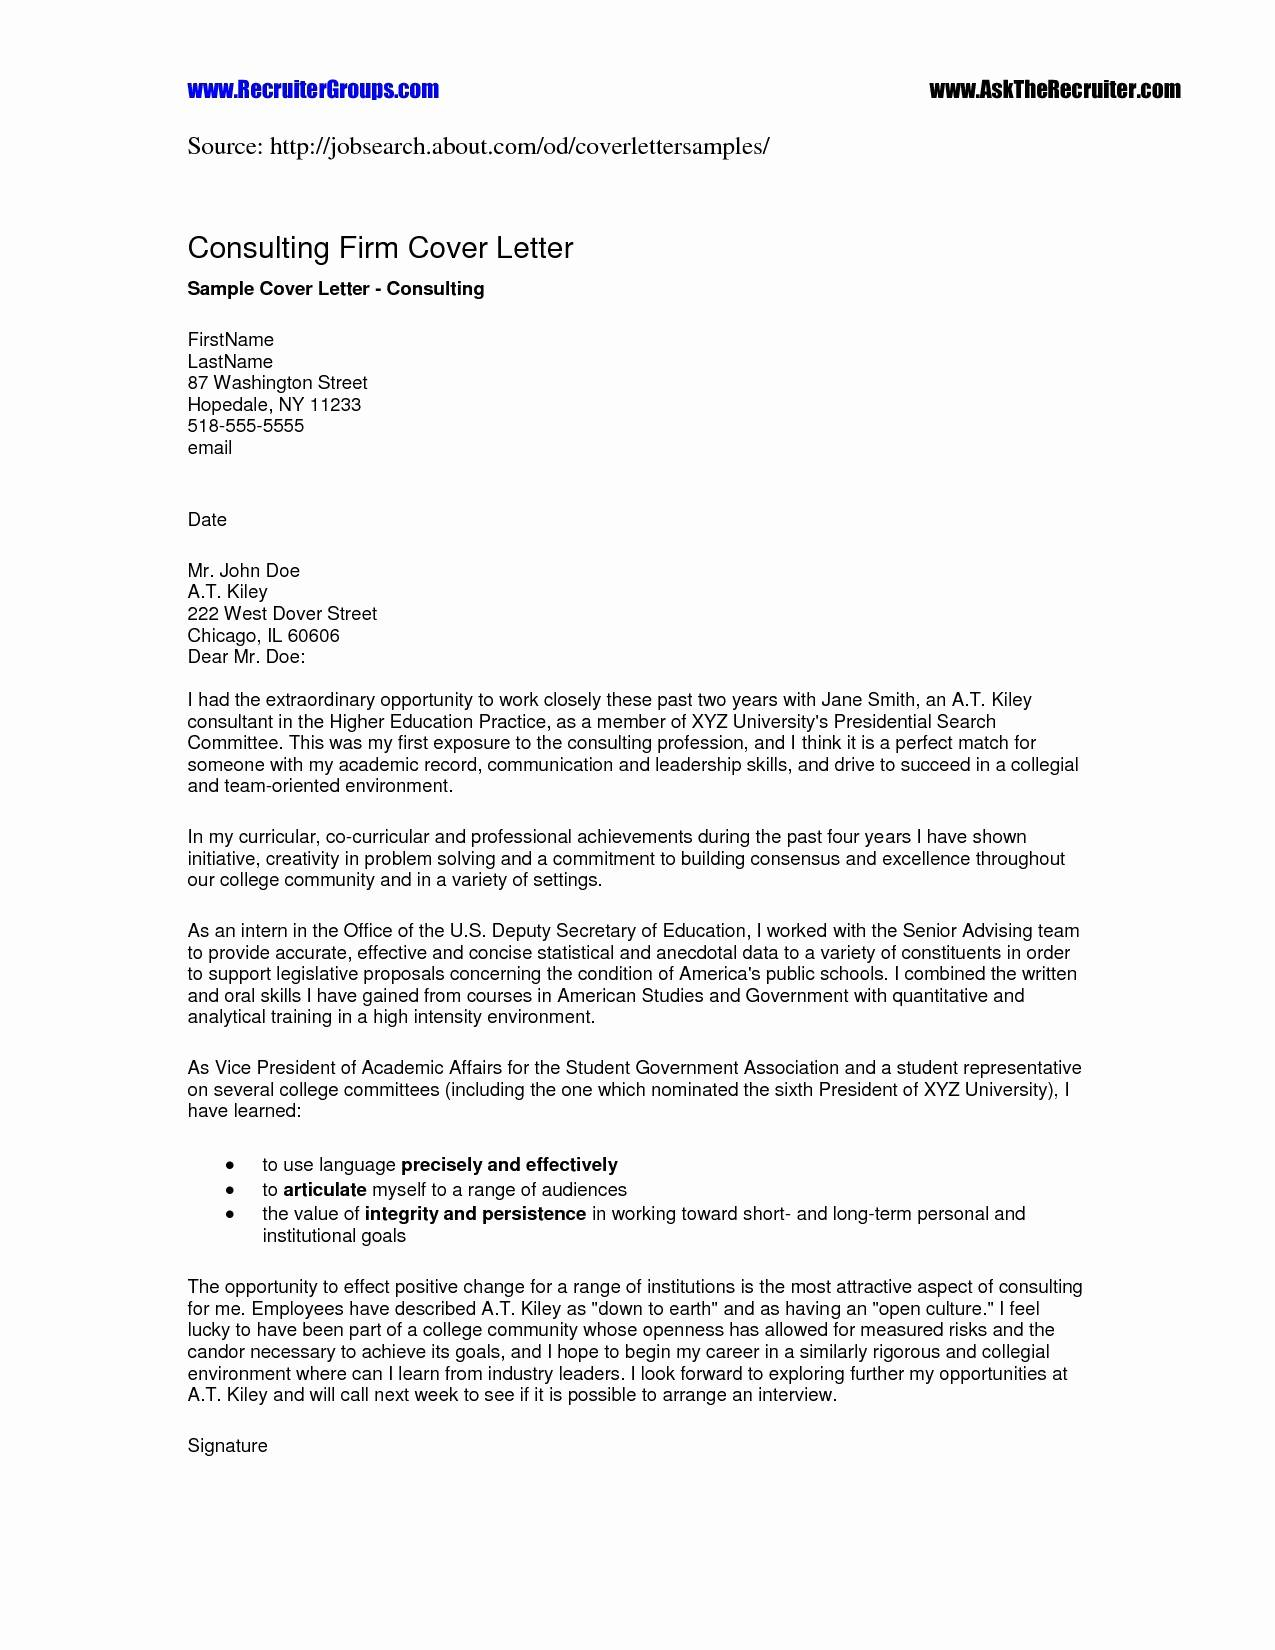 School Reference Letter Template - Certificate Good Moral Character Template Unique 30 Inspirational